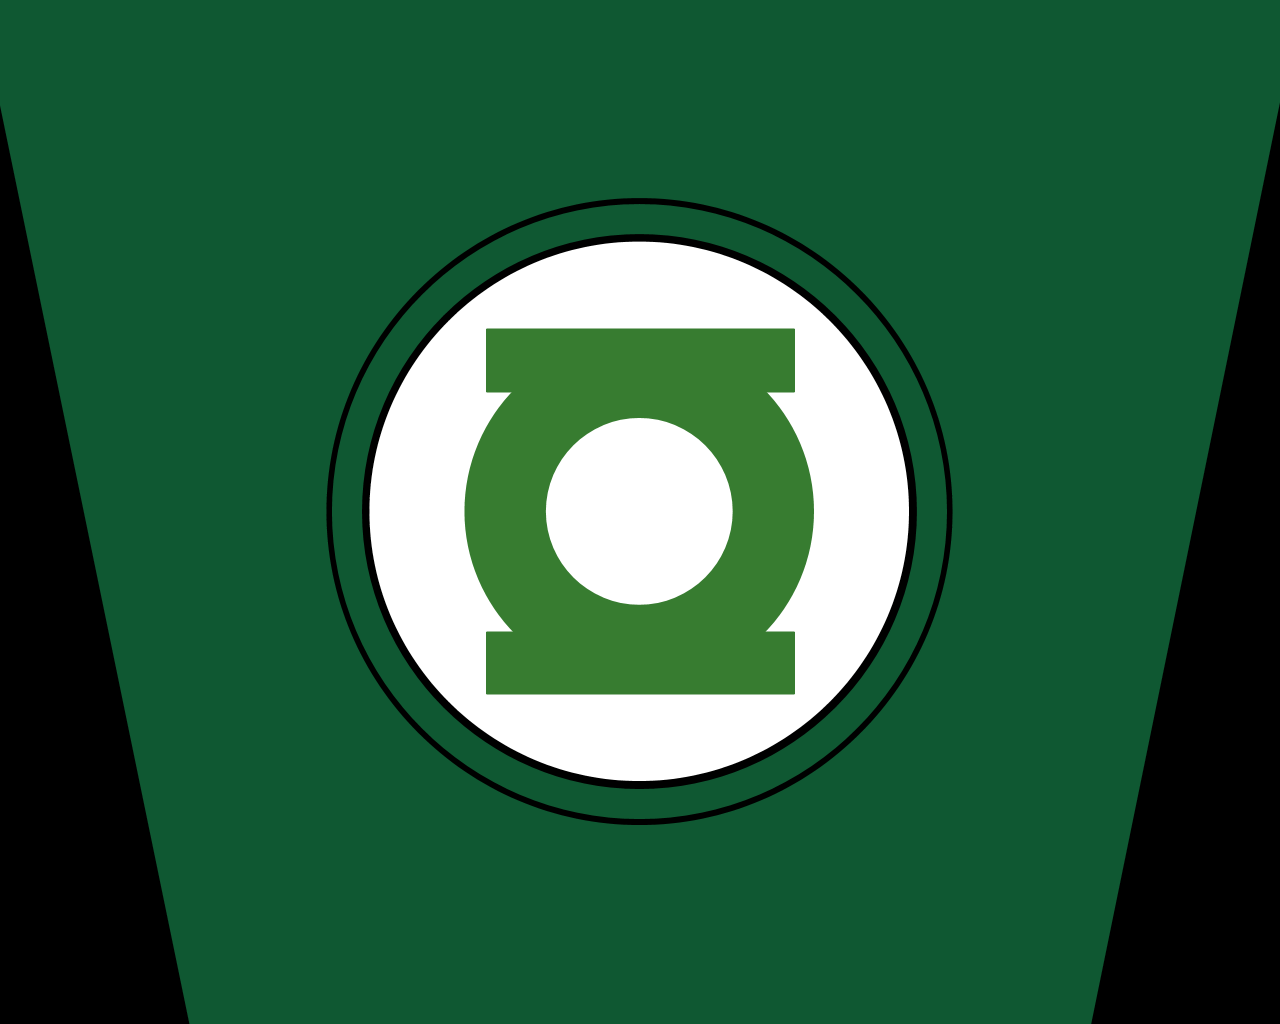 Green Lantern Logo Wallpapers 1280x1024